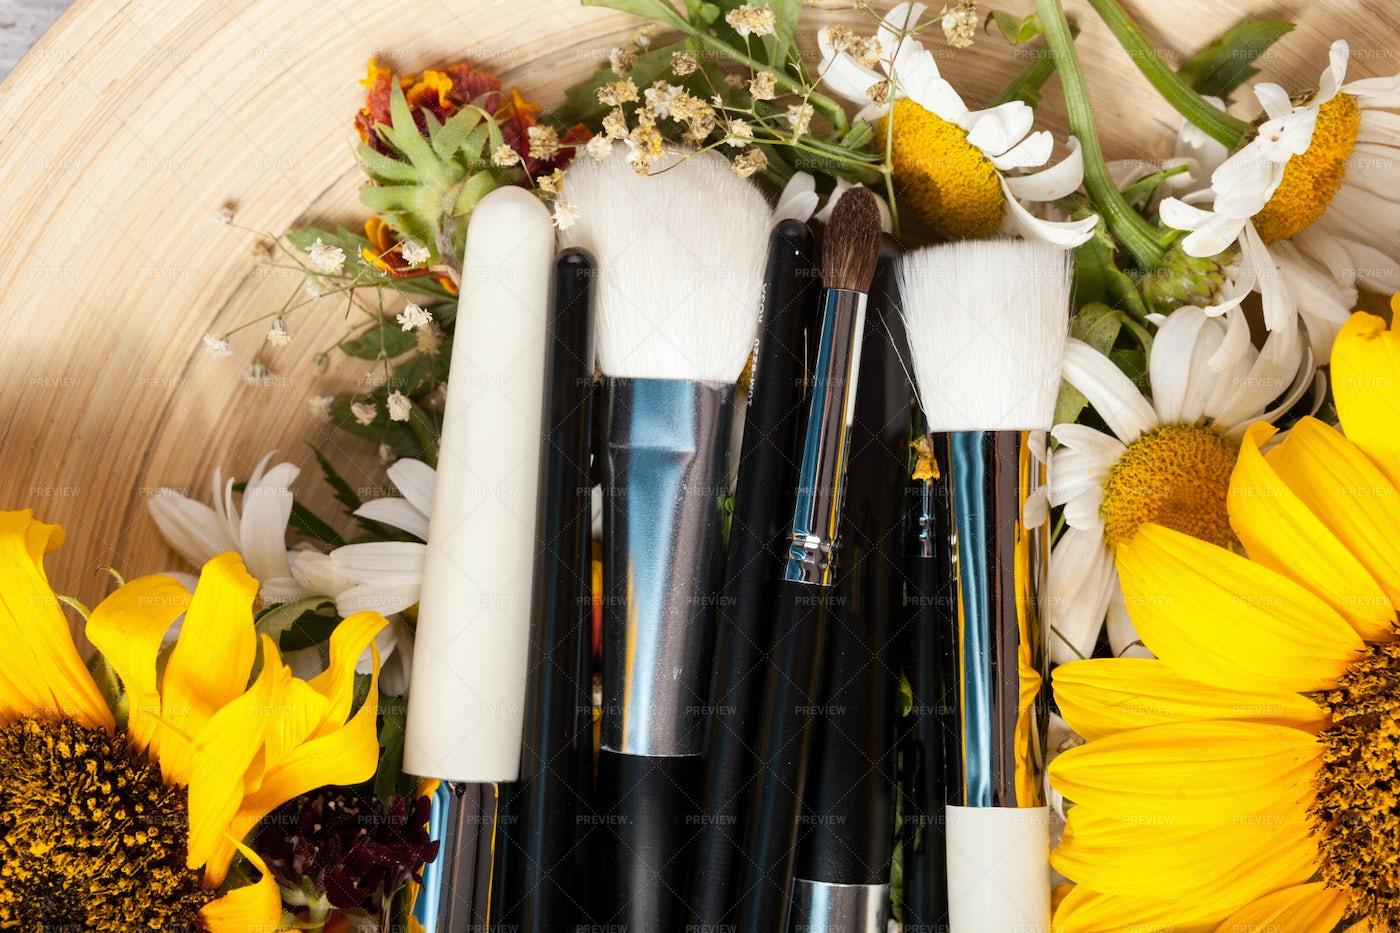 Makeup Brushes With Wild Yellow Flowers: Stock Photos